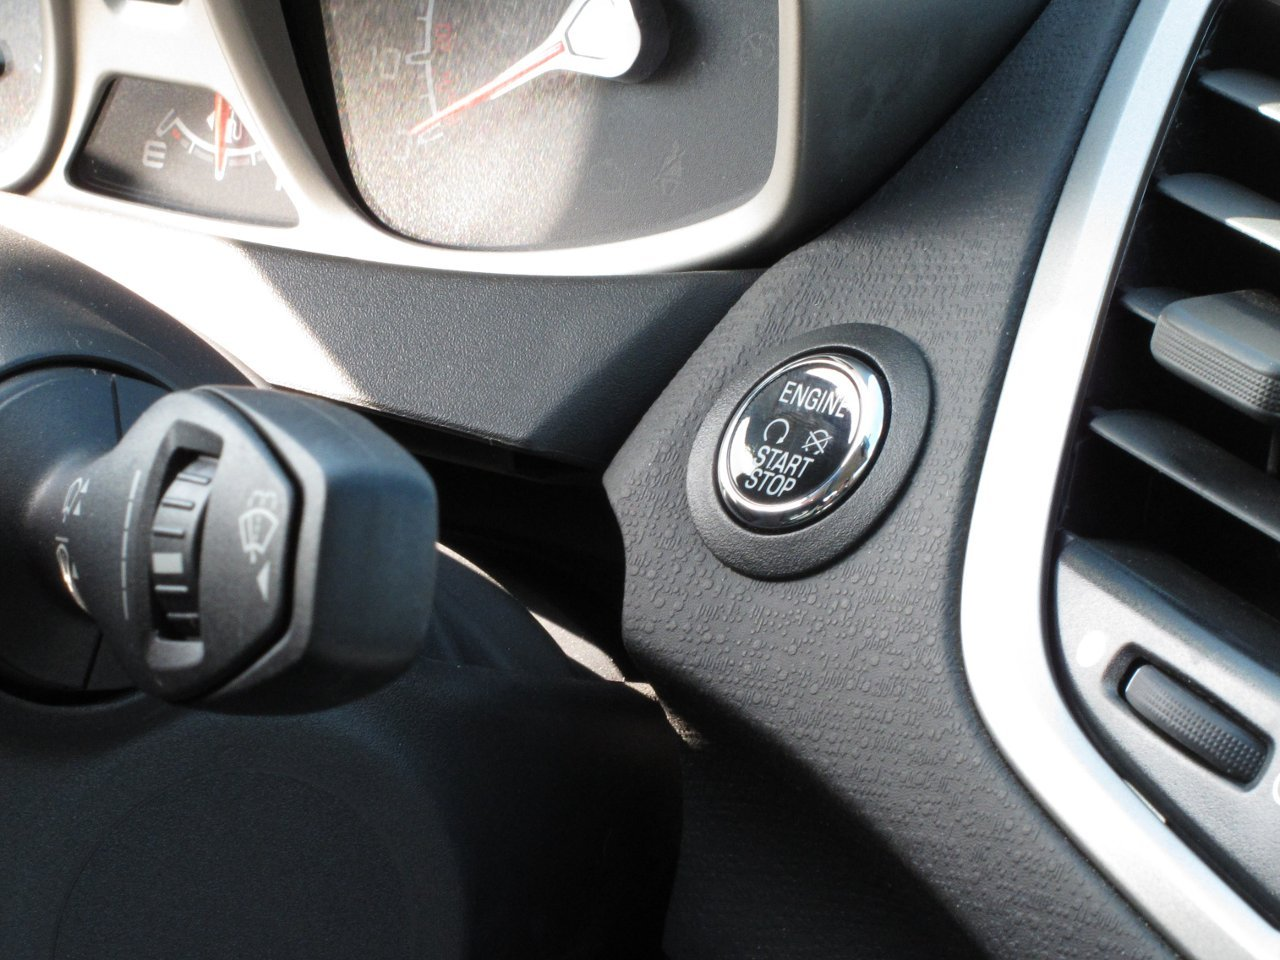 Ford Keyless Ignition Push to Start.JPG